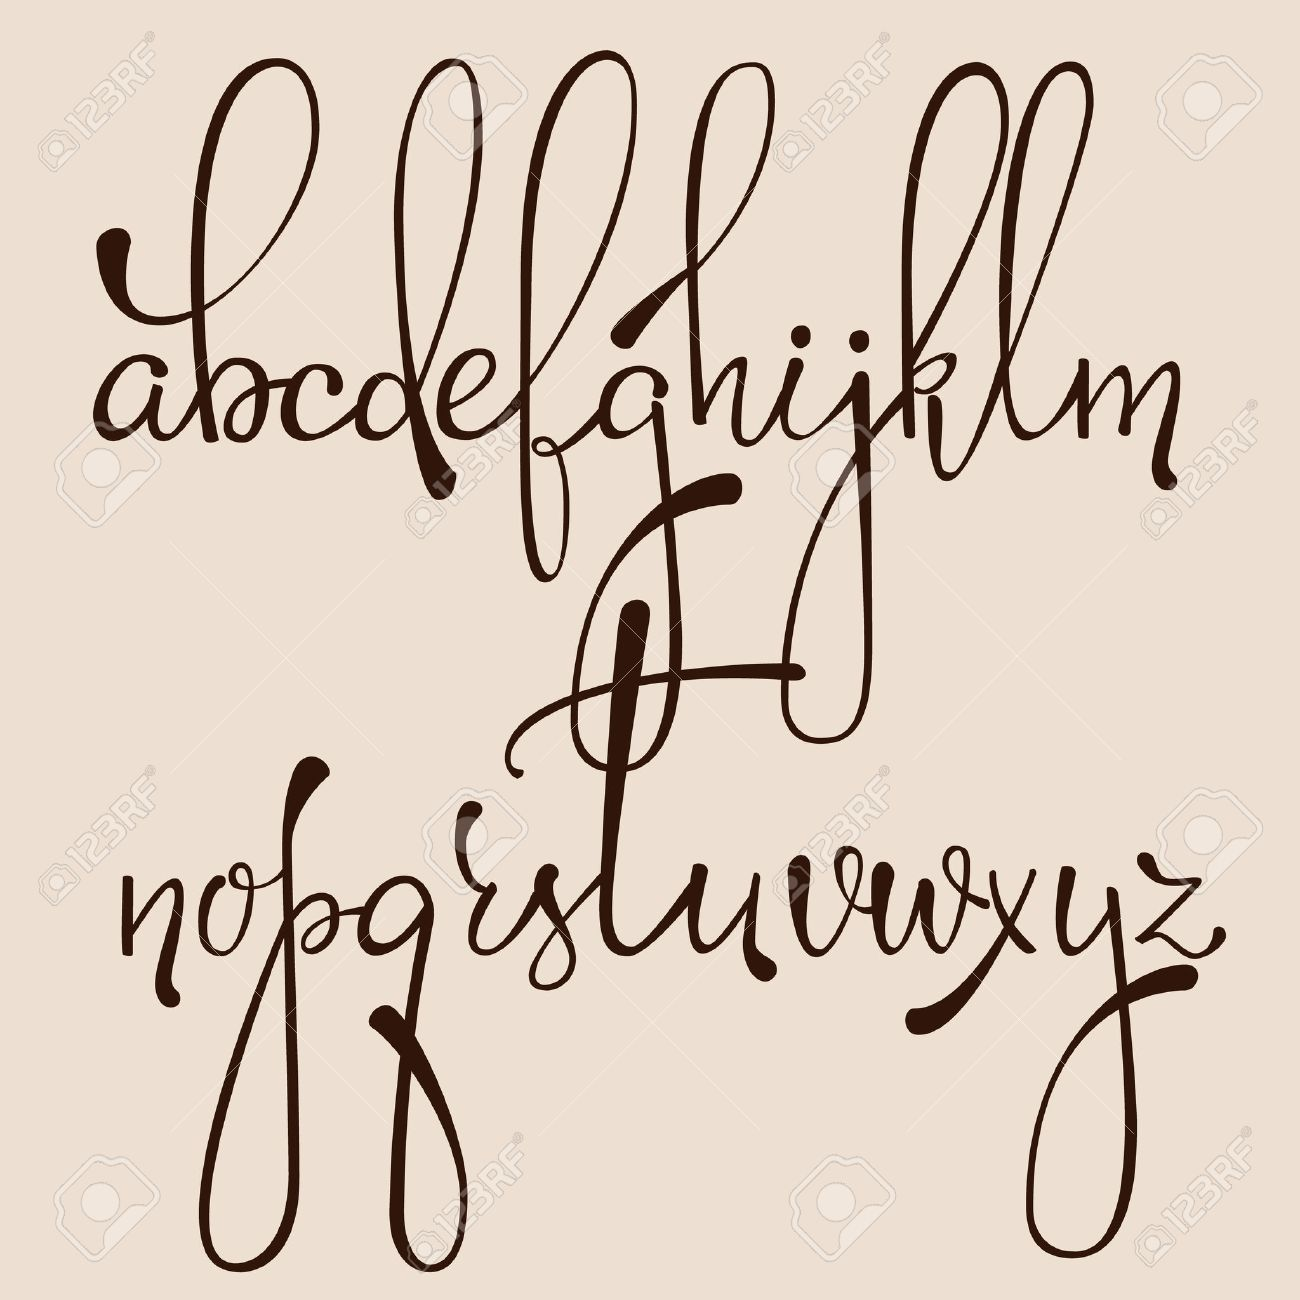 Handwritten Pointed Pen Ink Style Dacorative Calligraphy Cursive Font Alphabet Cute Letters